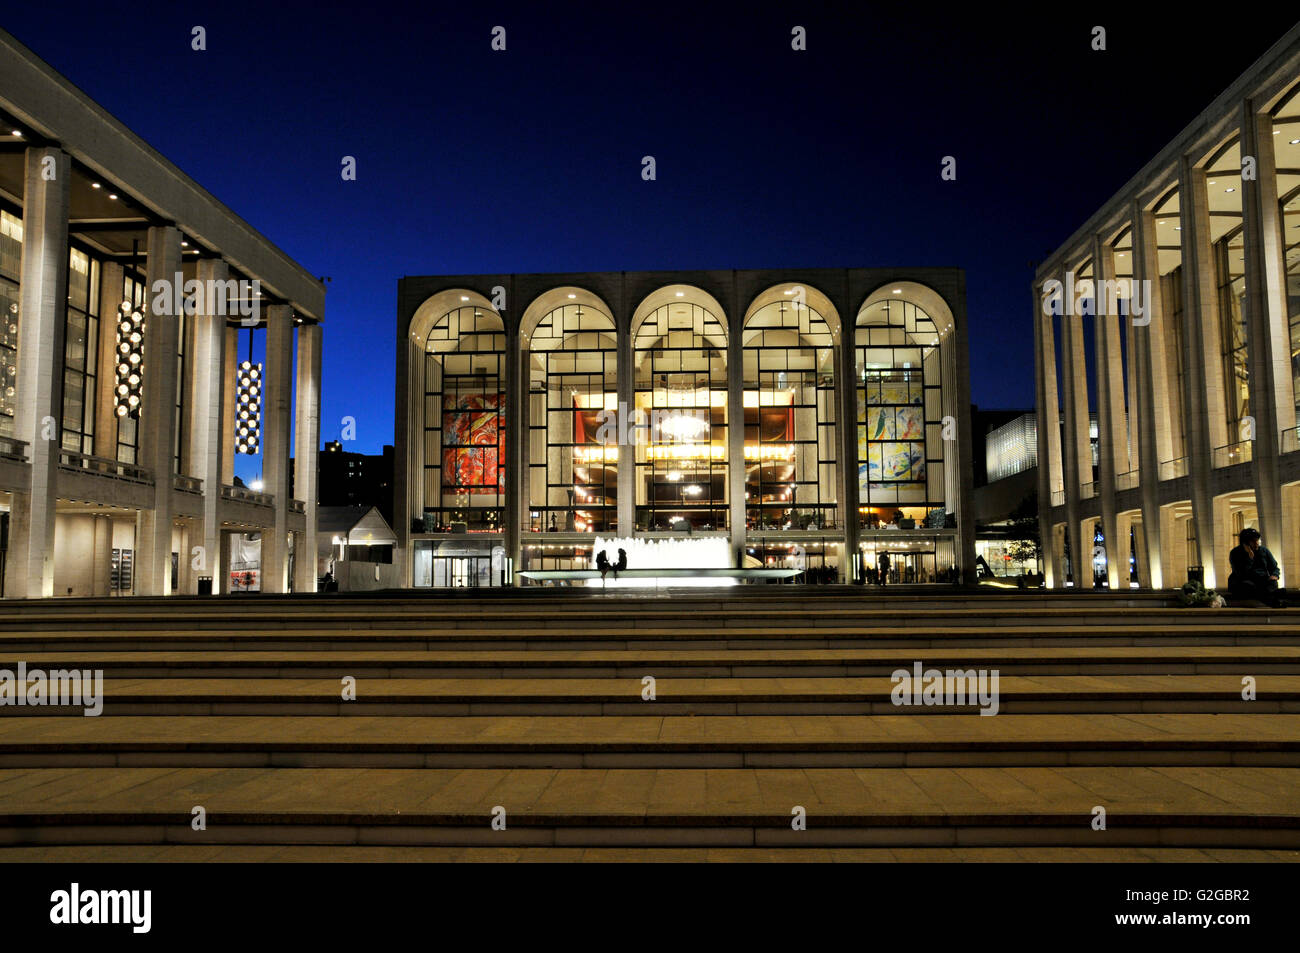 The renovated Lincoln Center for the Performing Arts, Broadway, Manhattan, New York City, New York, United States - Stock Image